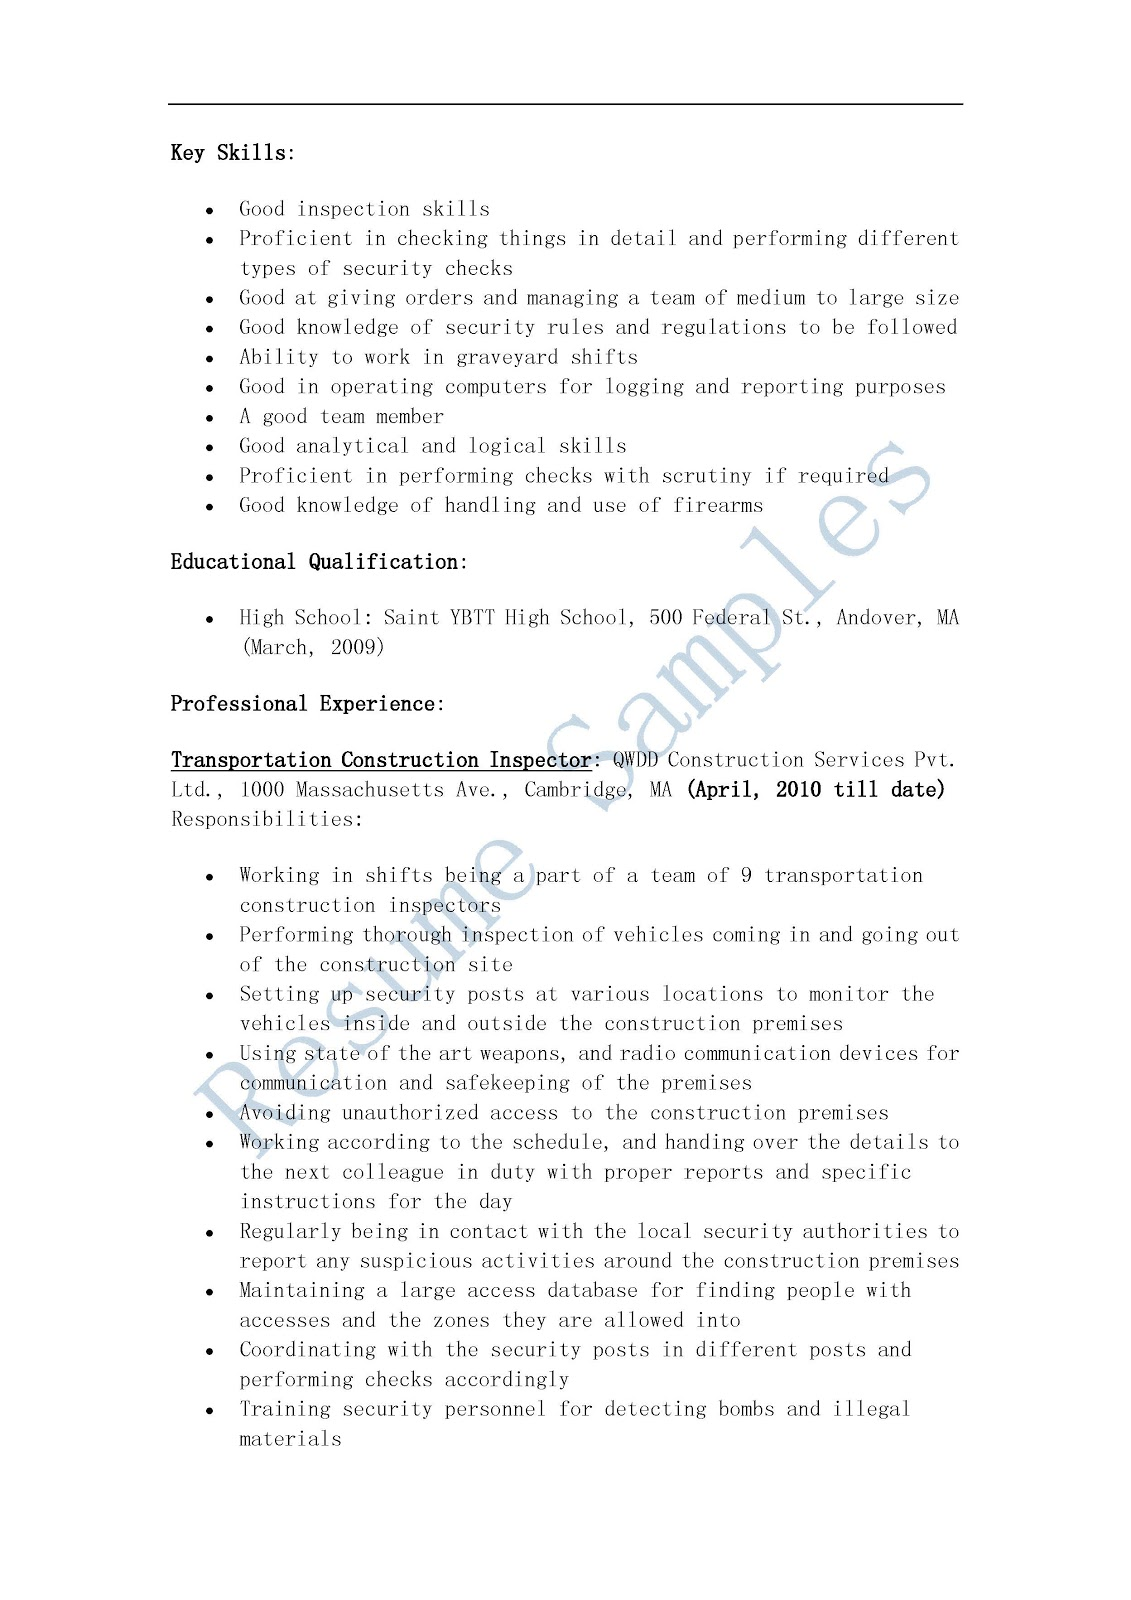 resume sles transportation construction inspector resume